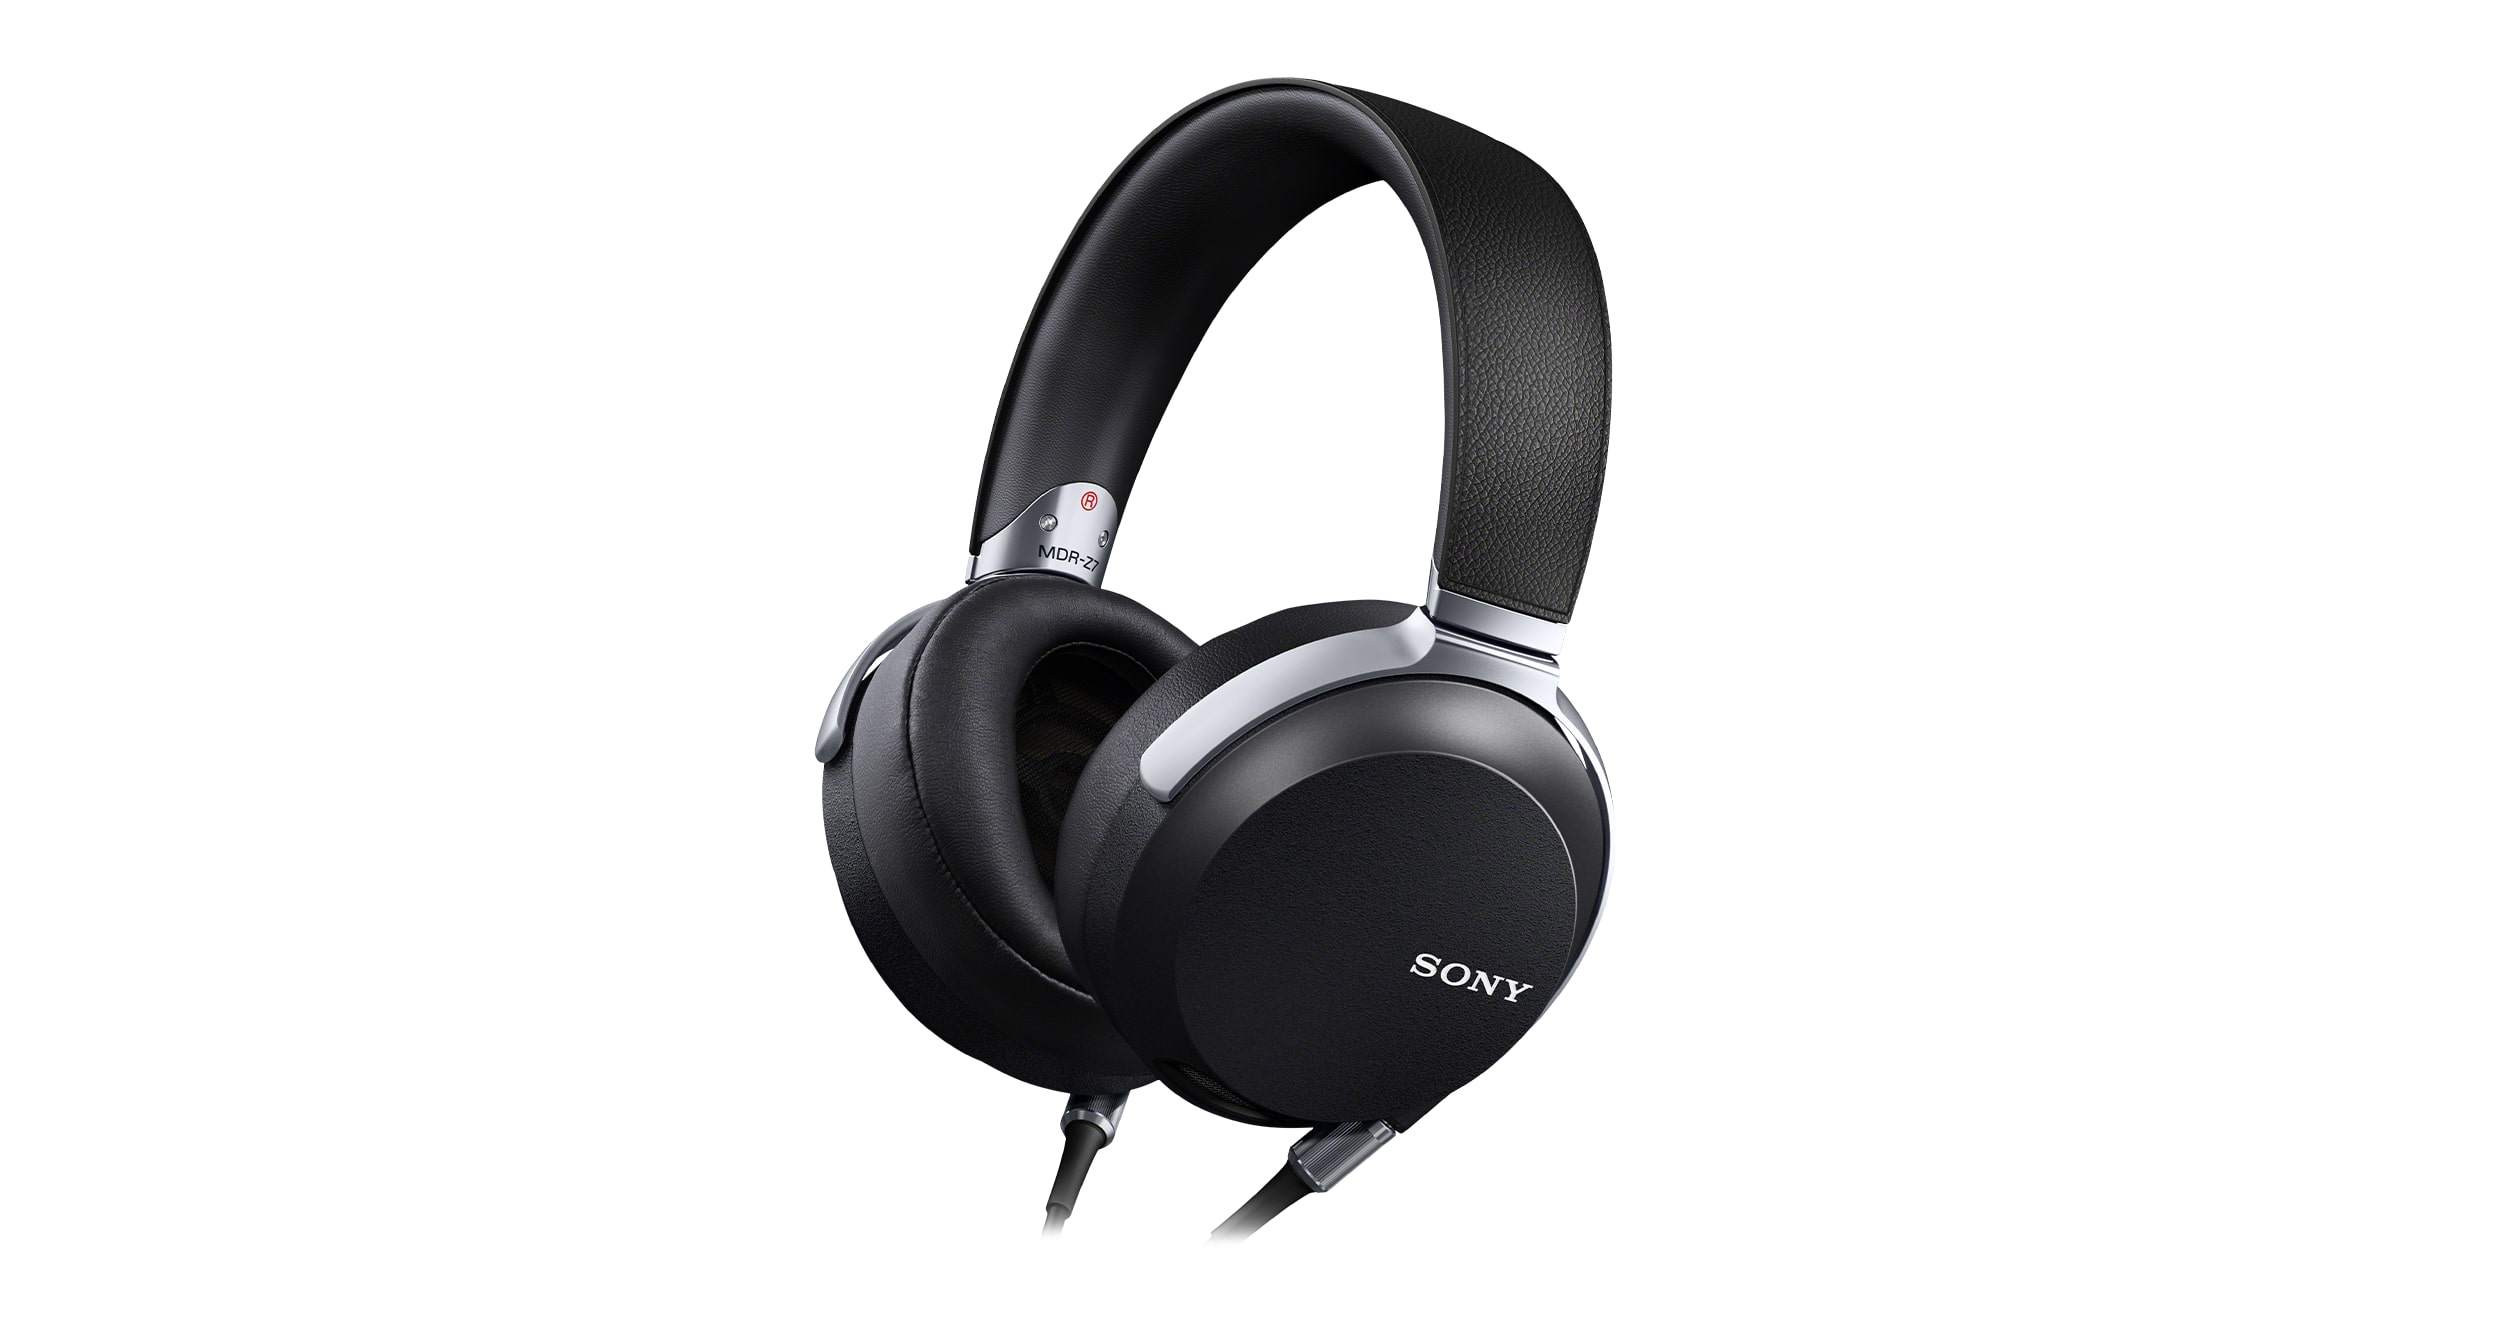 f1059bad5e0 Professional Headphones for High-Resolution Audio | MDR-Z7. | Sony MY